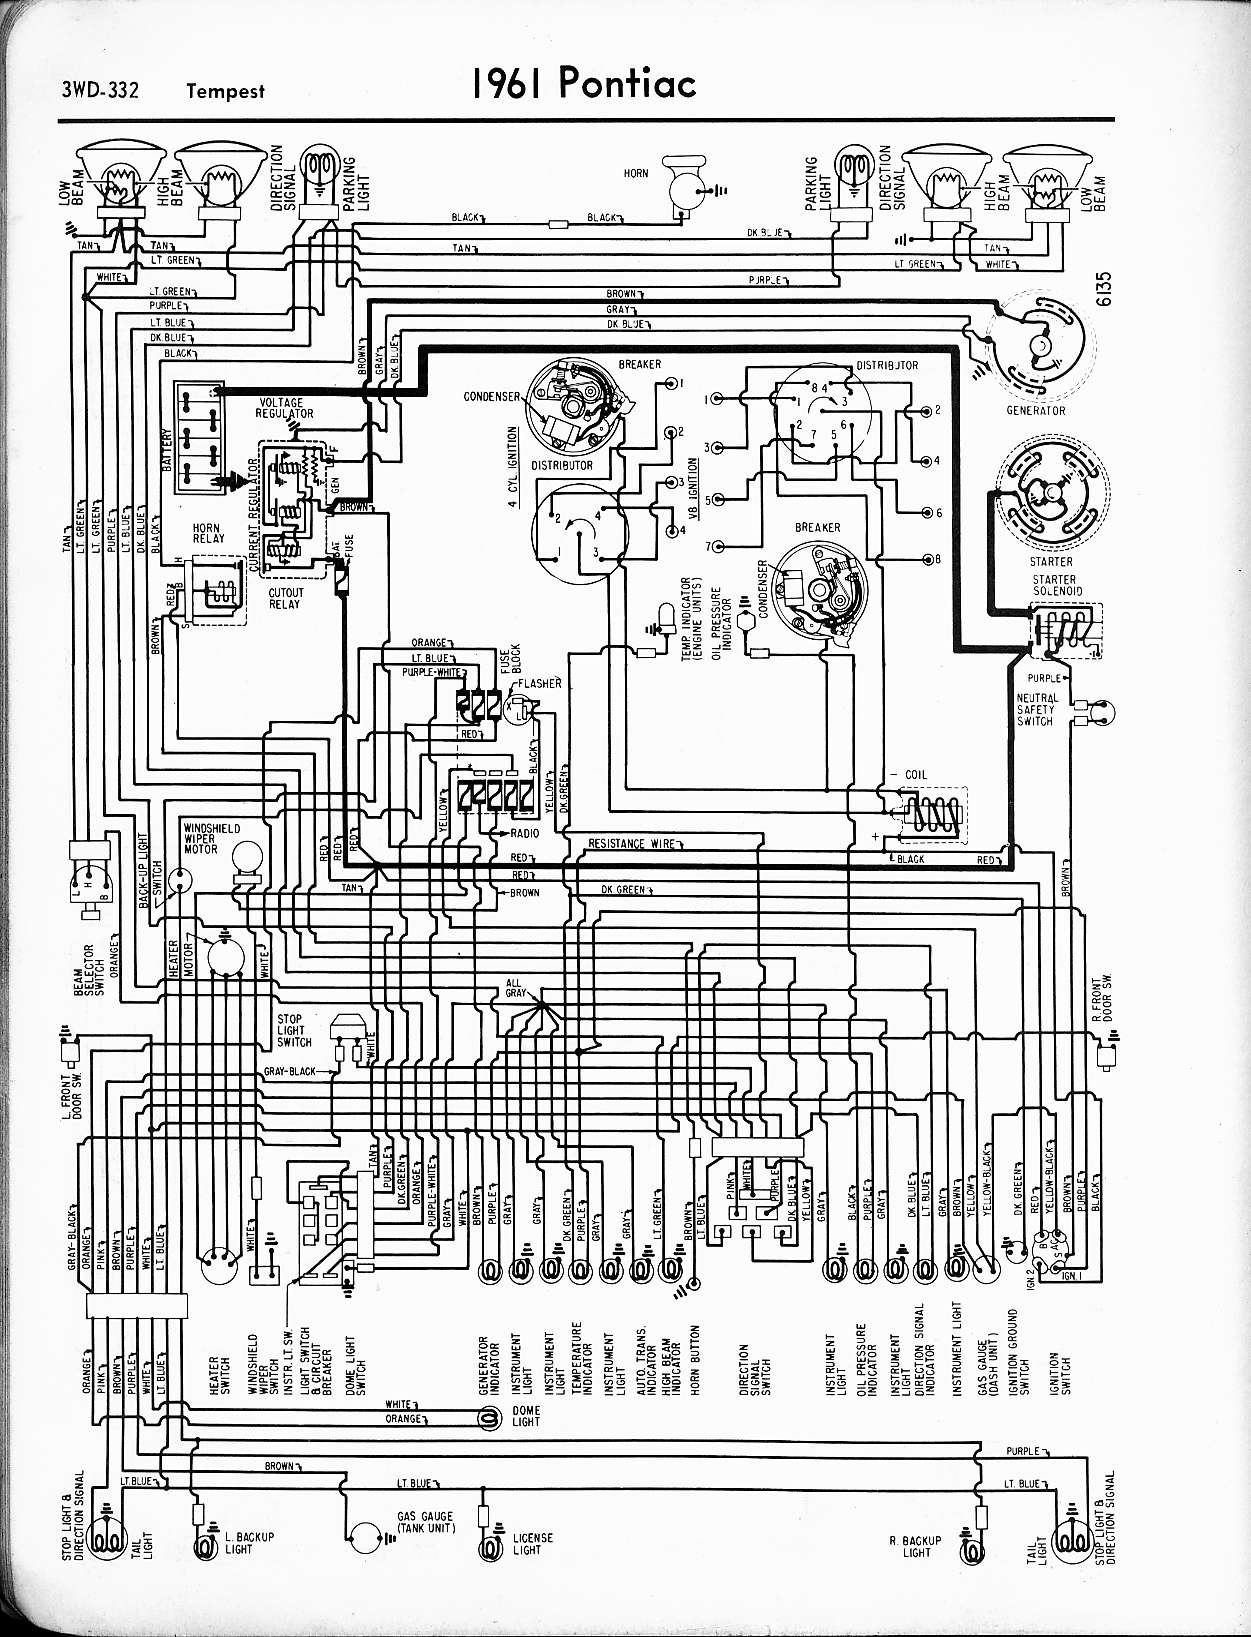 1962 Pontiac Wiring Diagram Diagrams Schema Solstice Engine Heater Simple Post Triumph